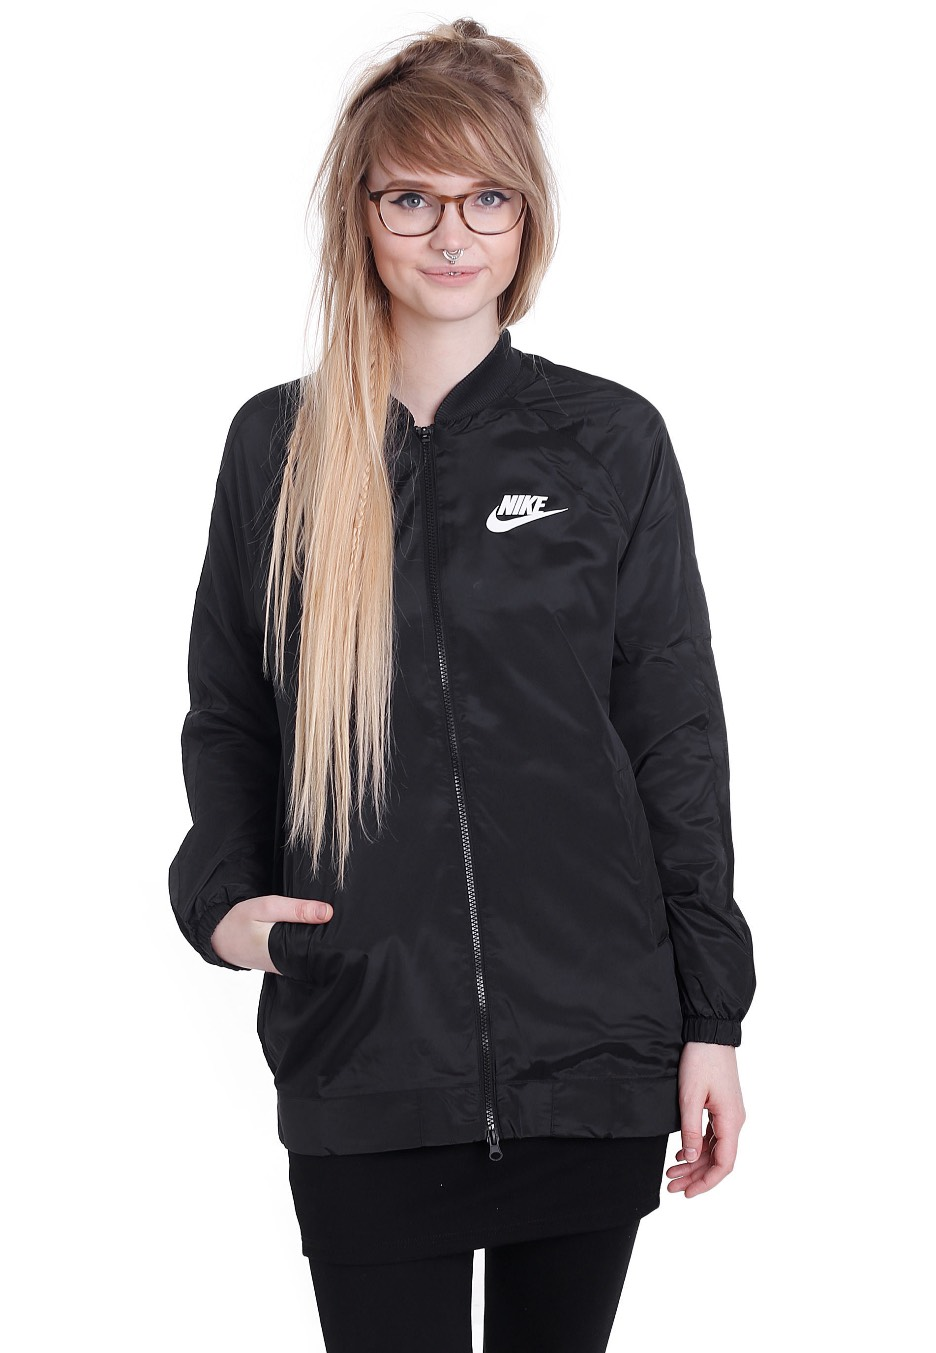 3569c4a56a996e Nike - Sportswear Advance 15 Black/White - Windbreaker